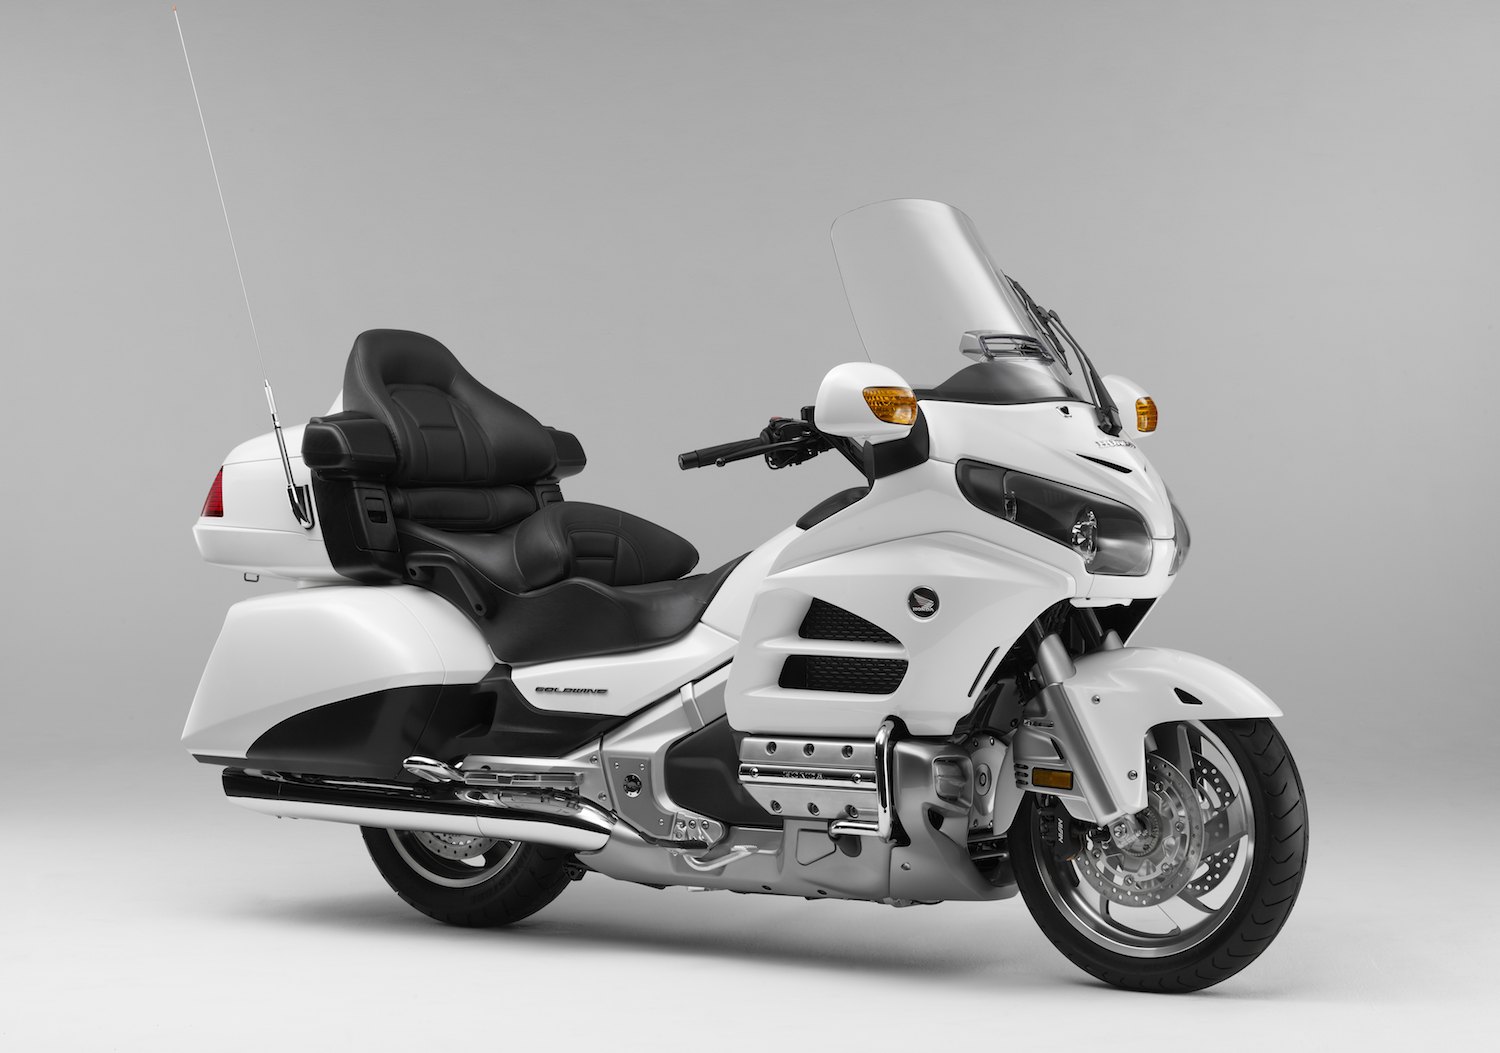 2011 HONDA Gold Wing